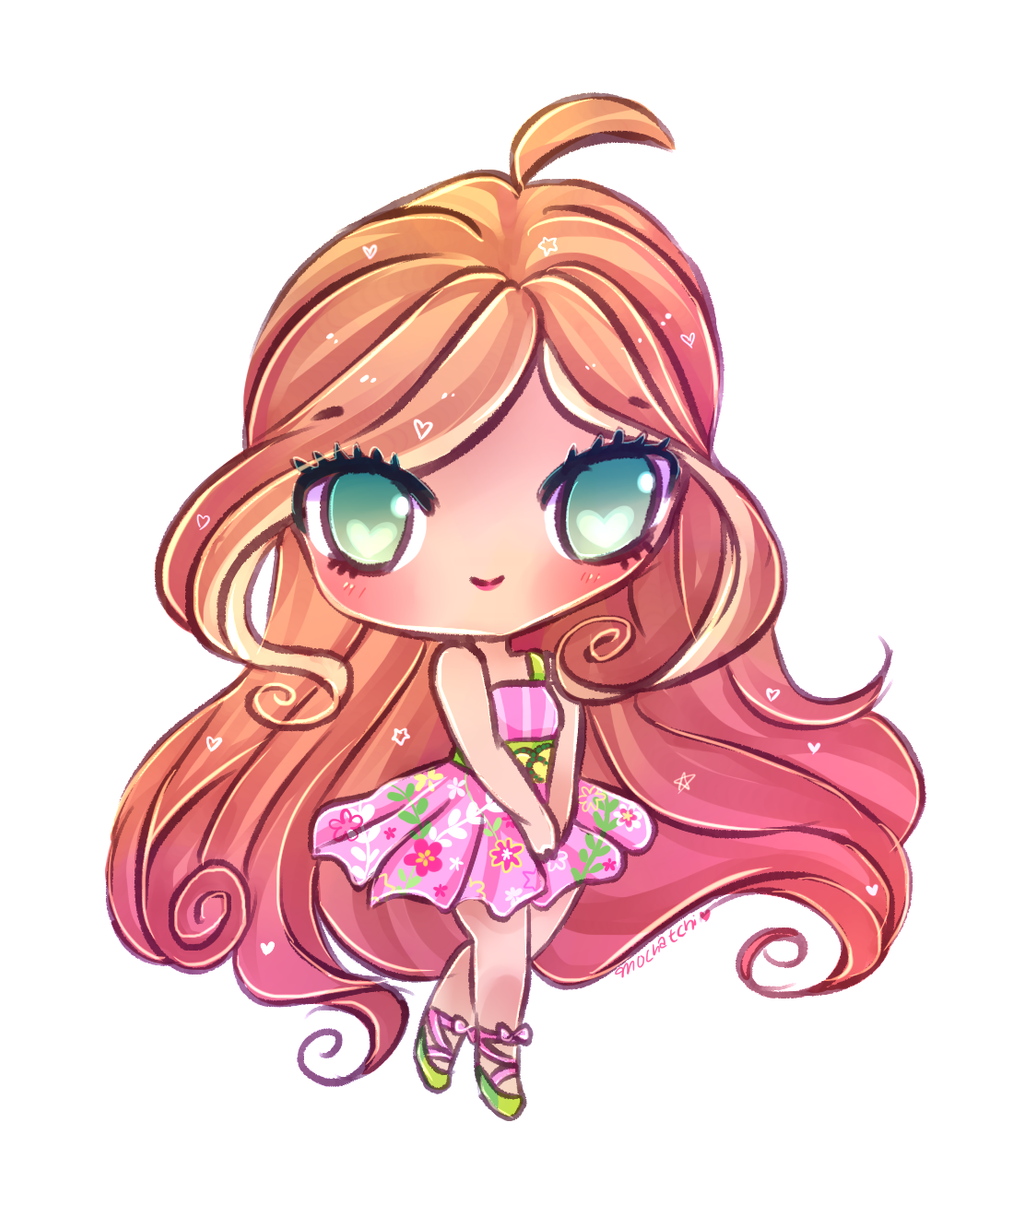 Winx club flora by mochatchi on deviantart - Bloom dessin anime ...